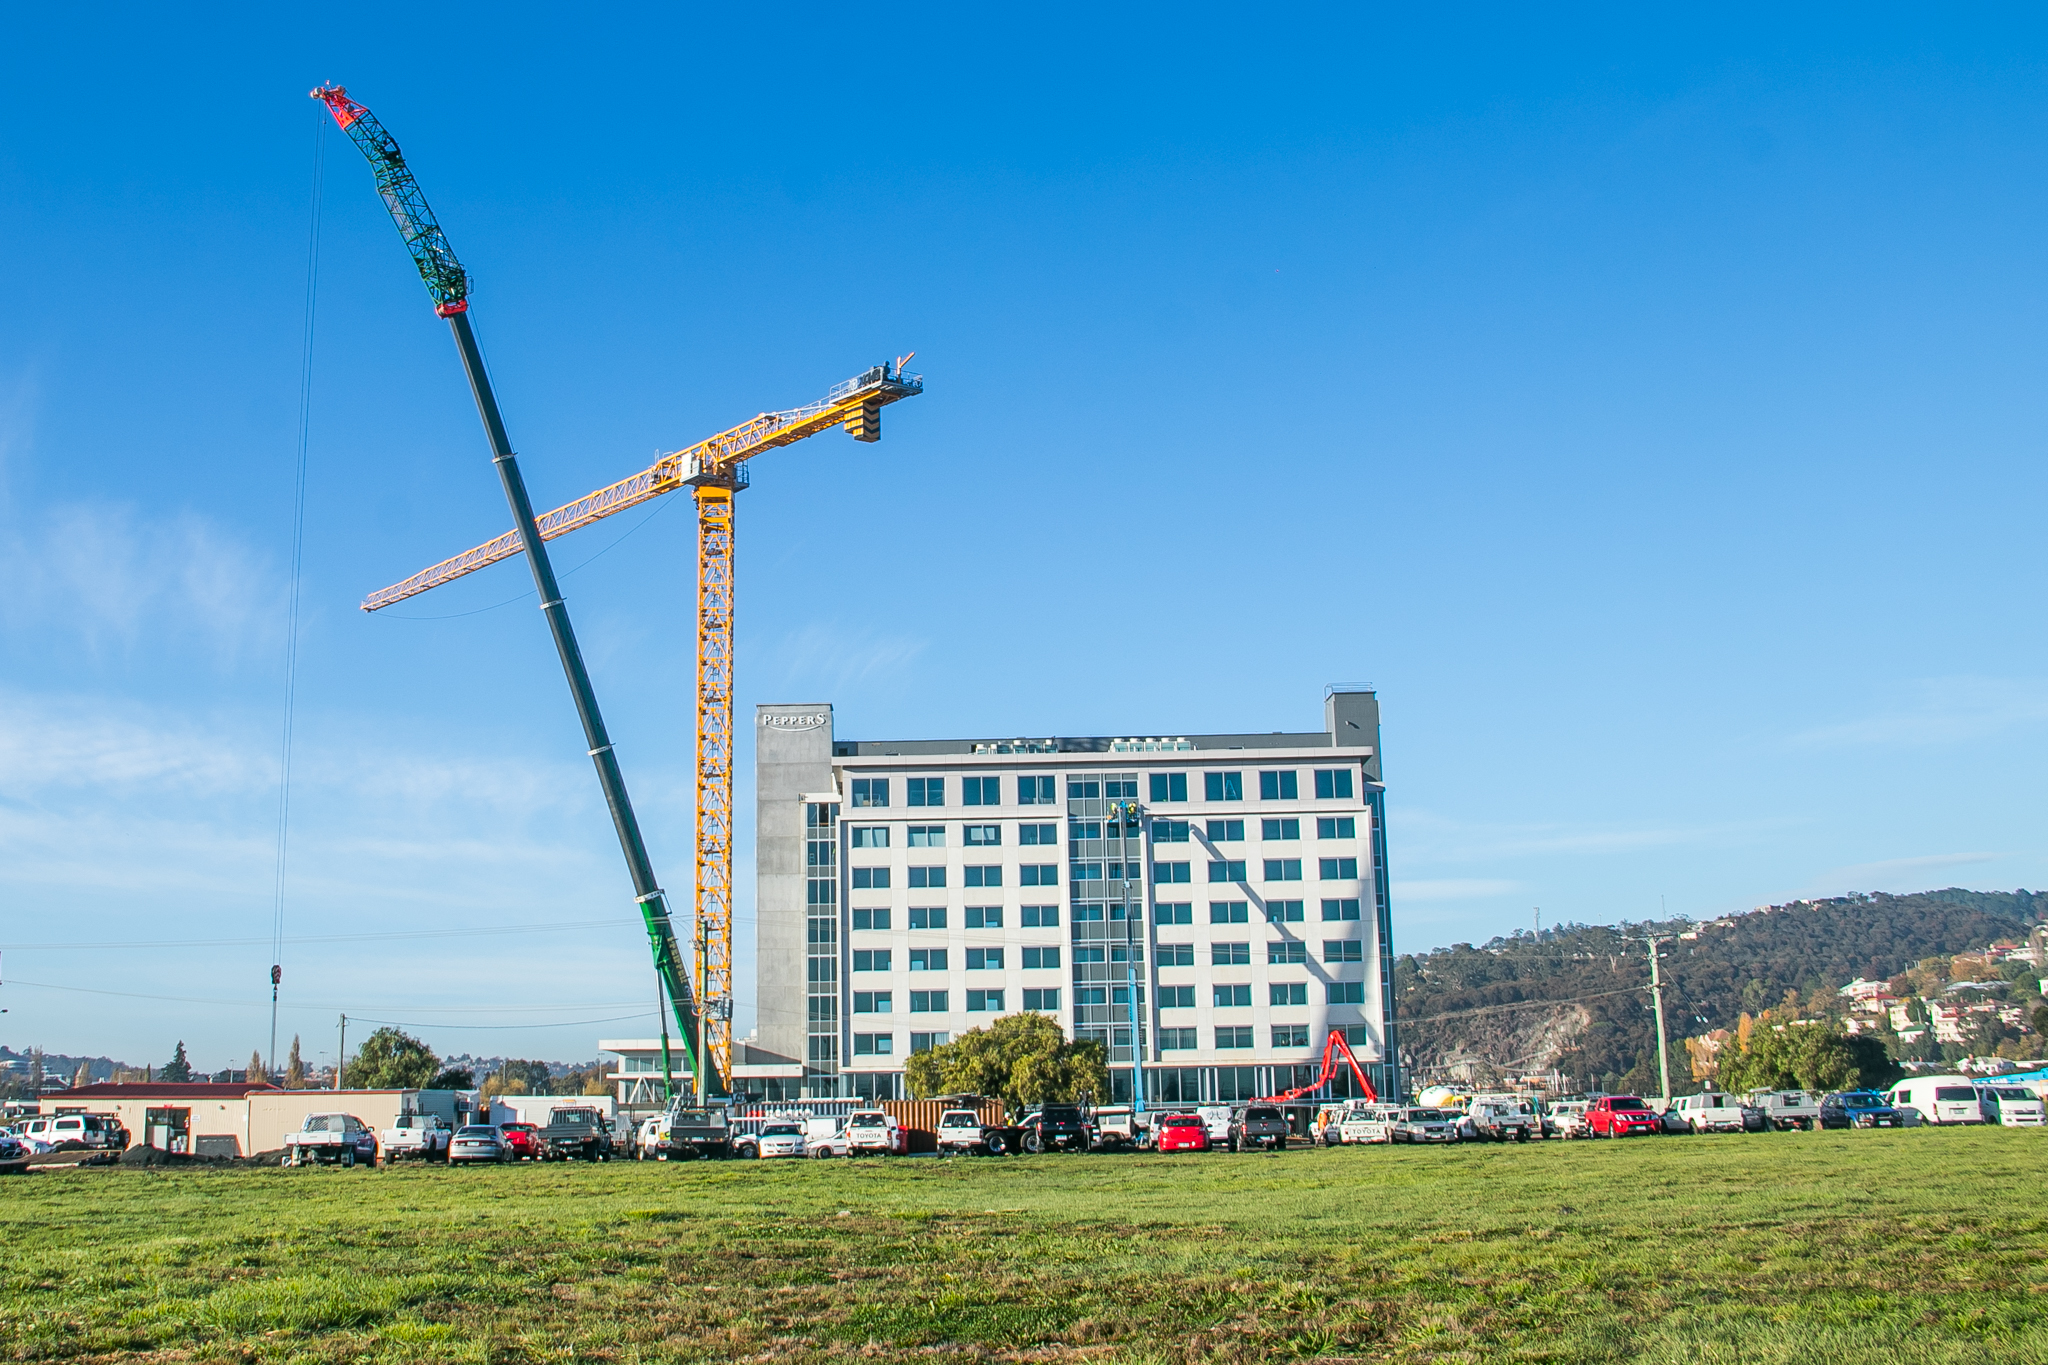 Peppers Silo Hotel Launceston - Construction help from Pfeiffer Cranes Tasmania